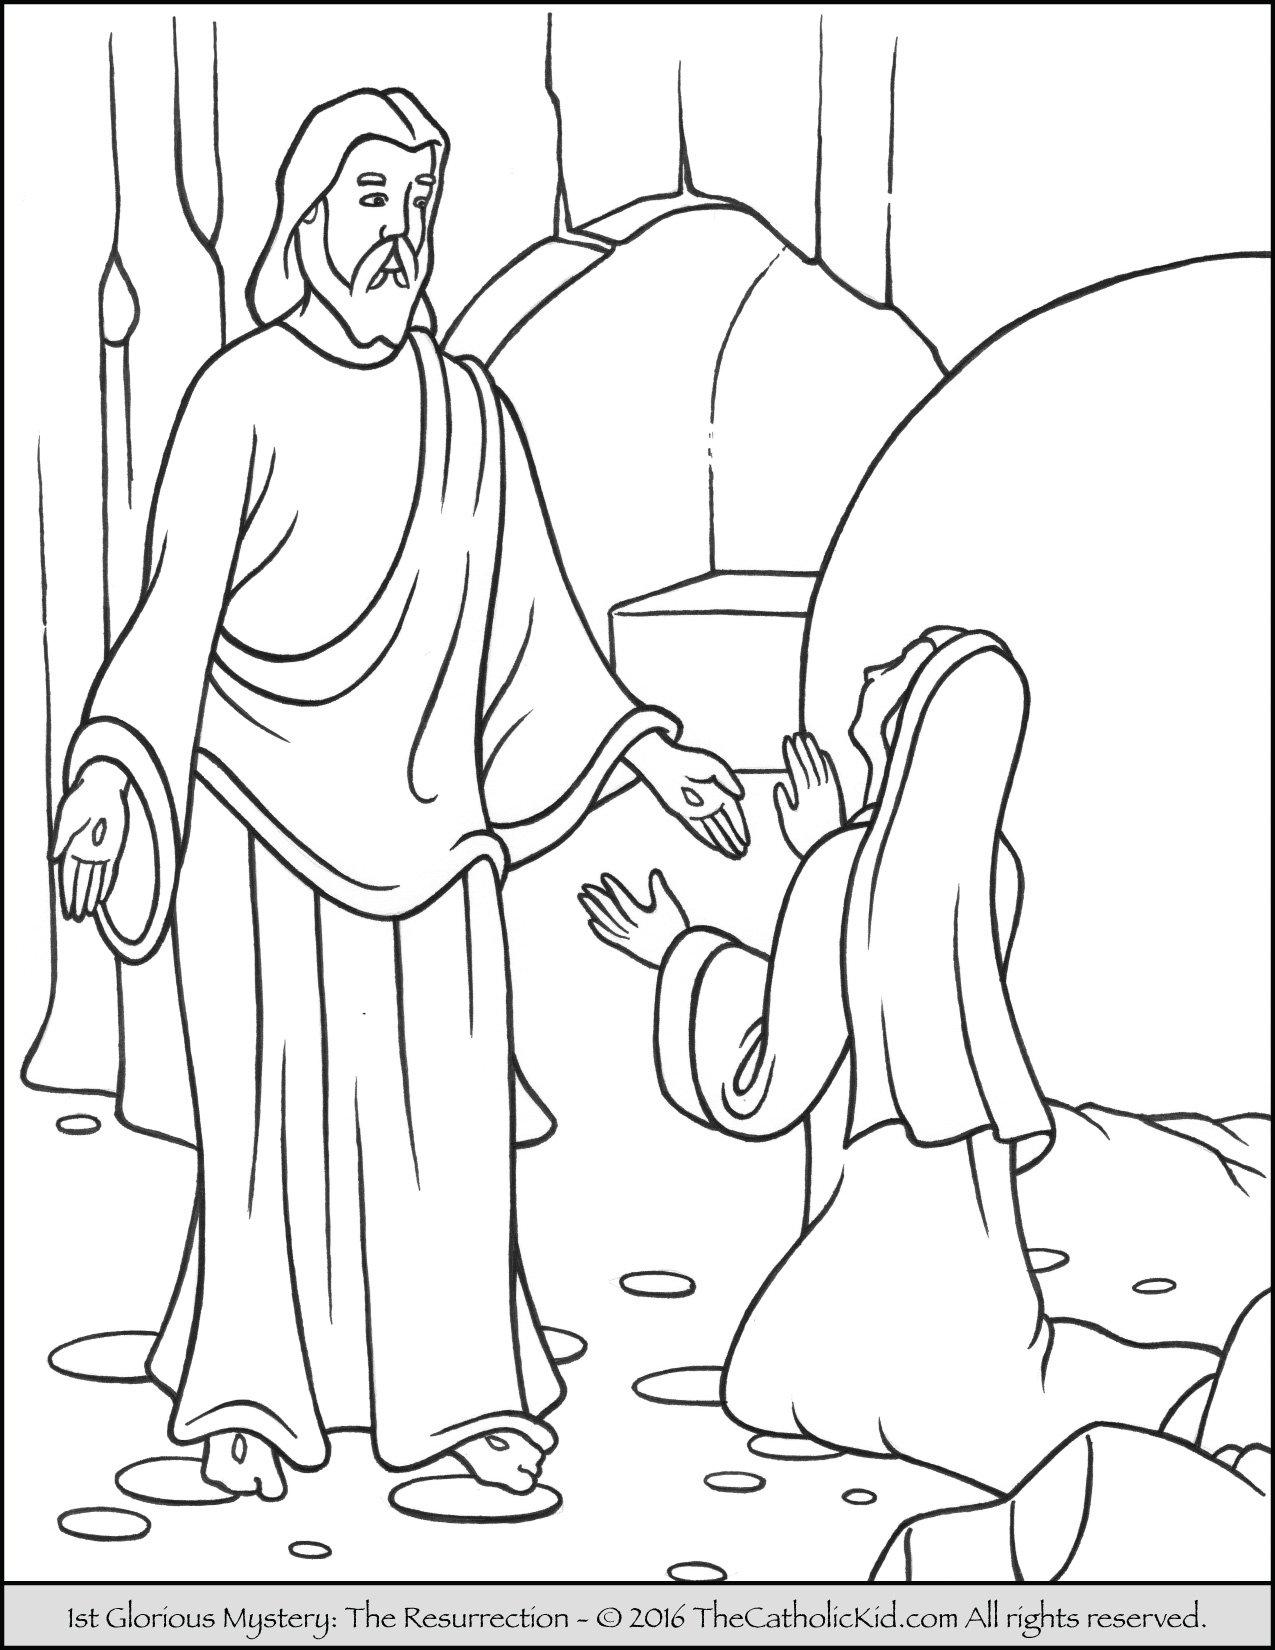 Glorious Mysteries Rosary Coloring Pages - The Catholic Kid